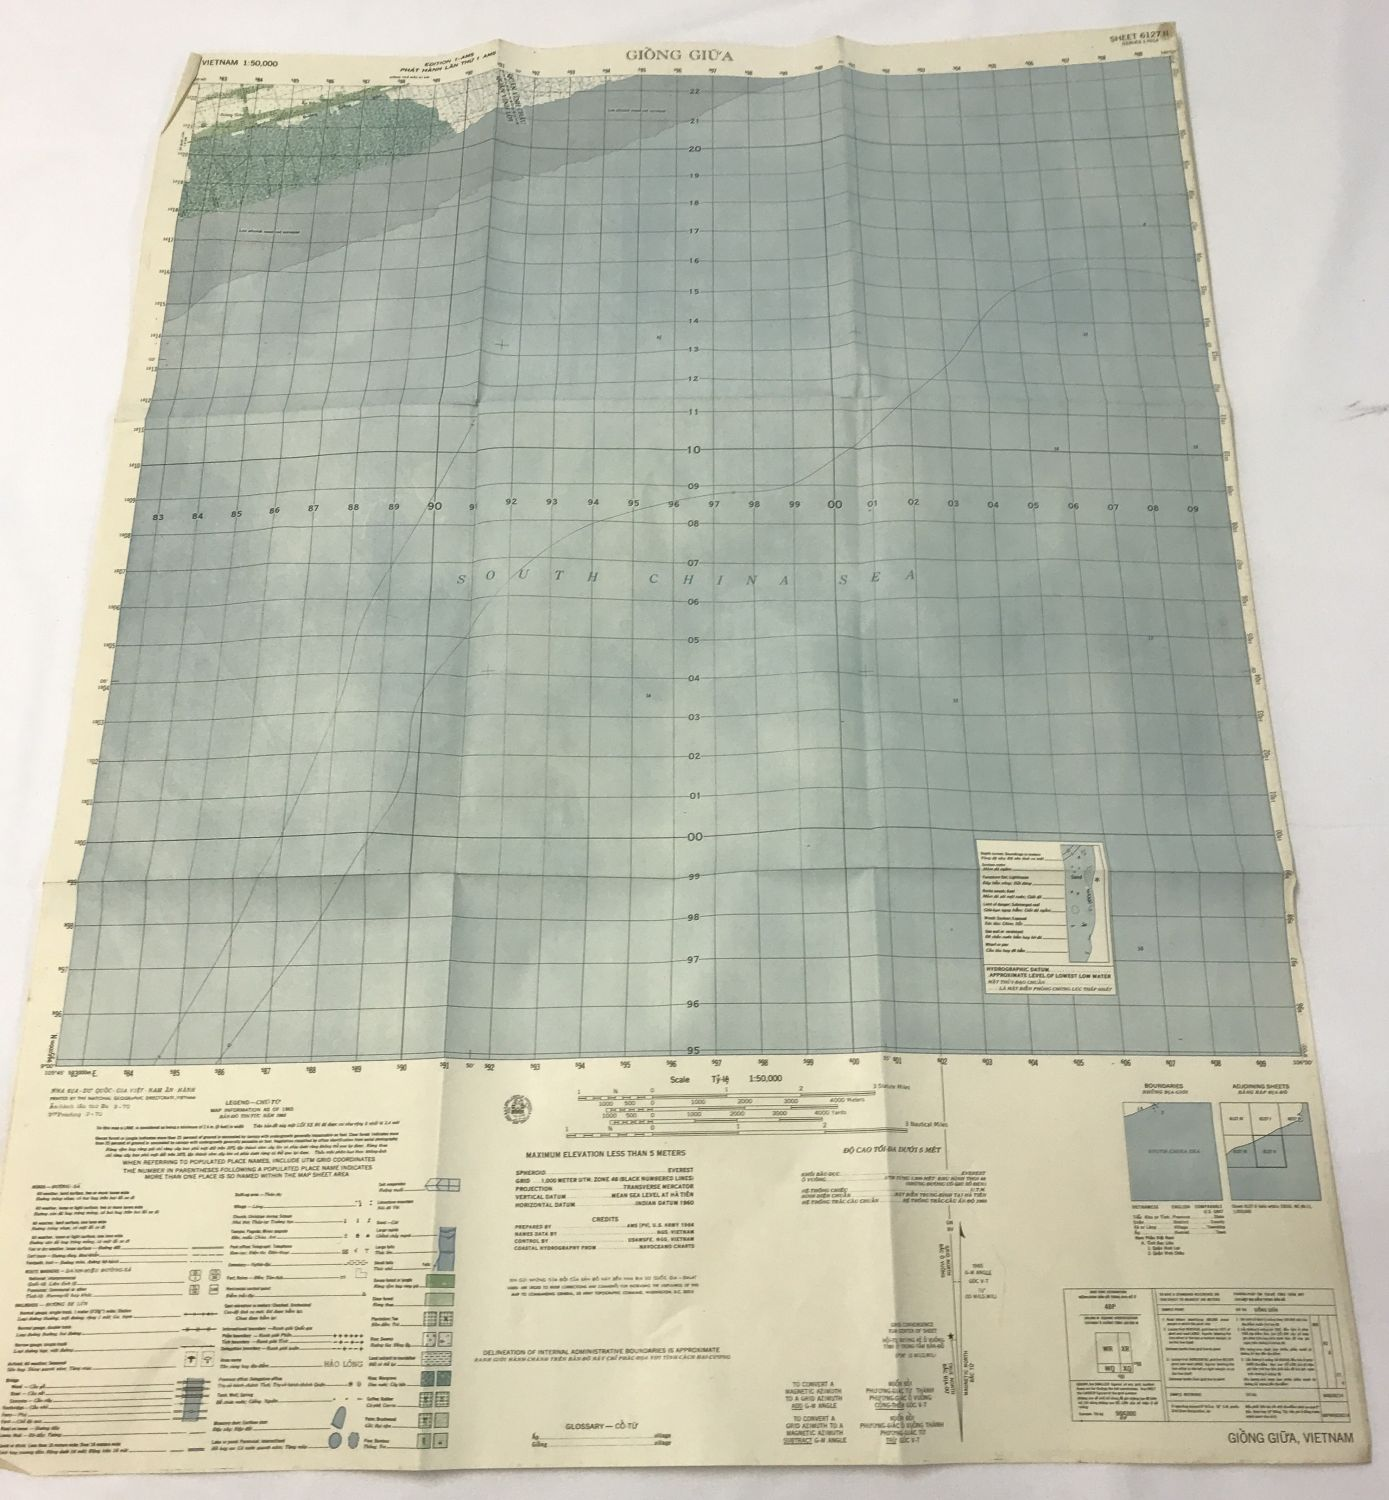 Lot 188 - A Vietnam war style military map of the Giong Giua province.